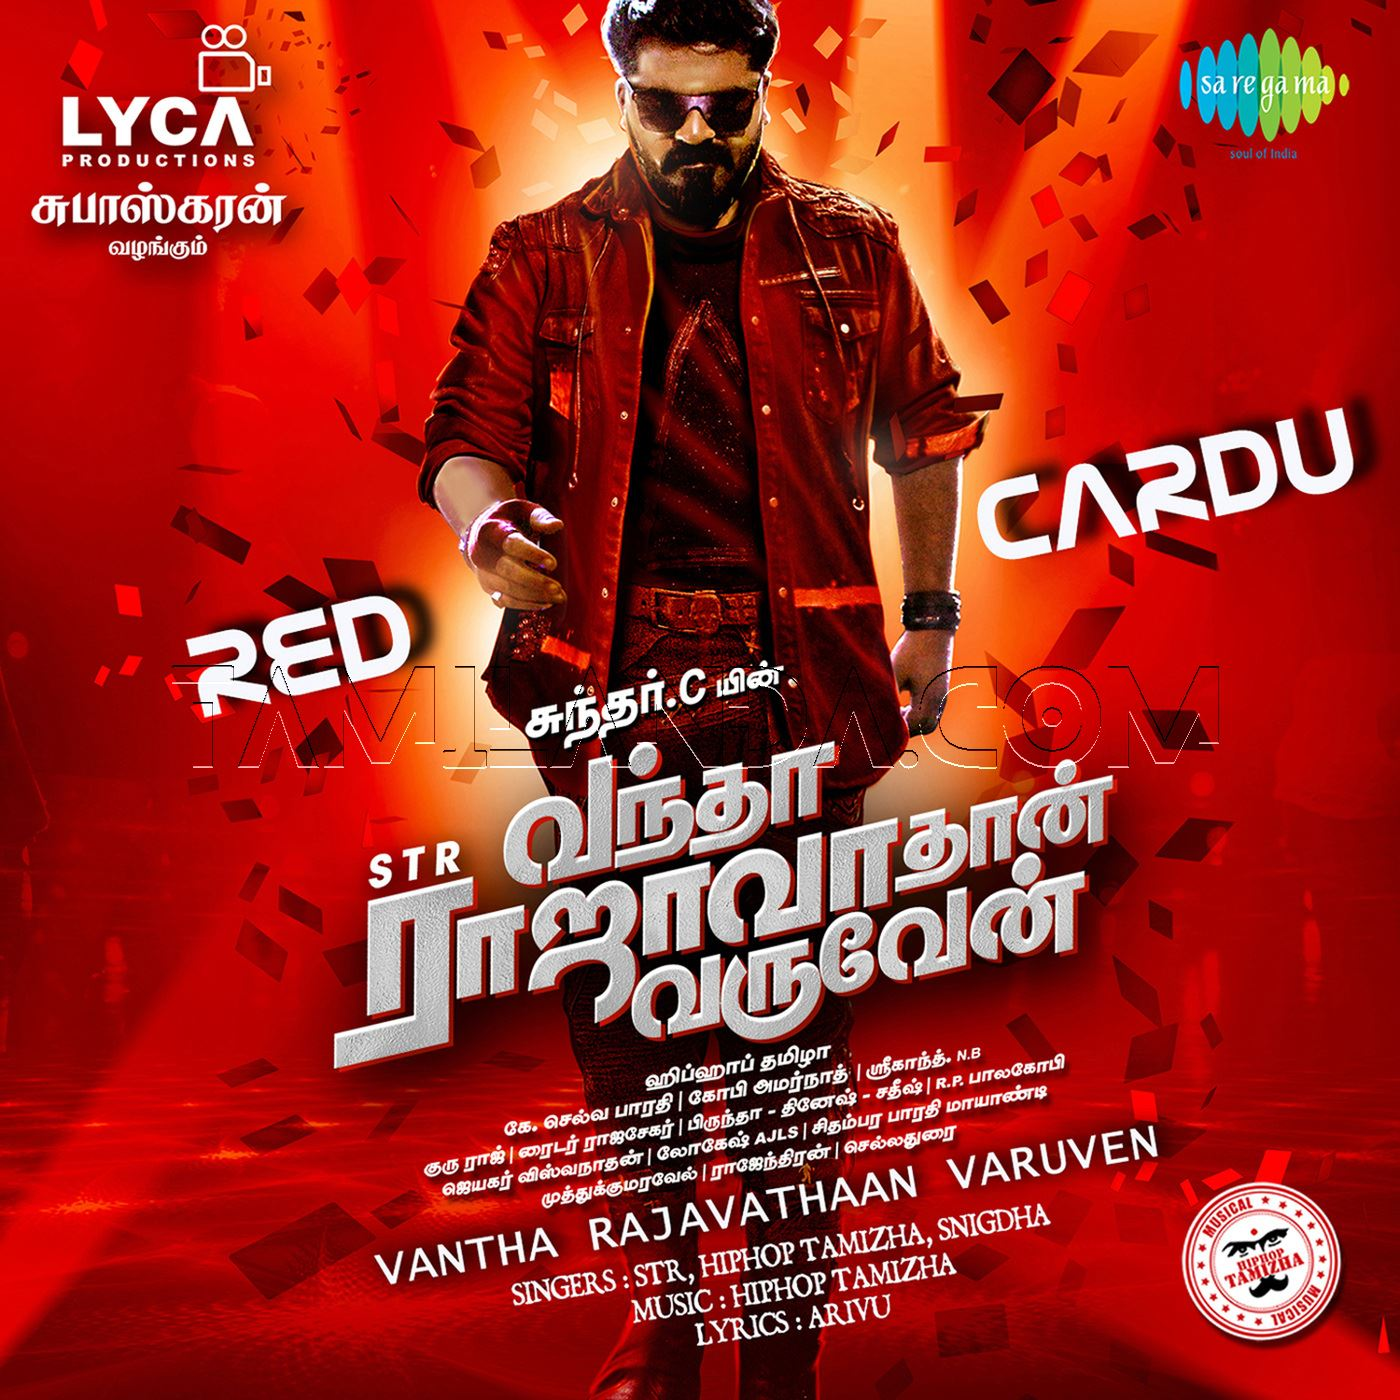 Red Cardu (From Vantha Rajavathaan Varuven) – Single FLAC Song (2019)